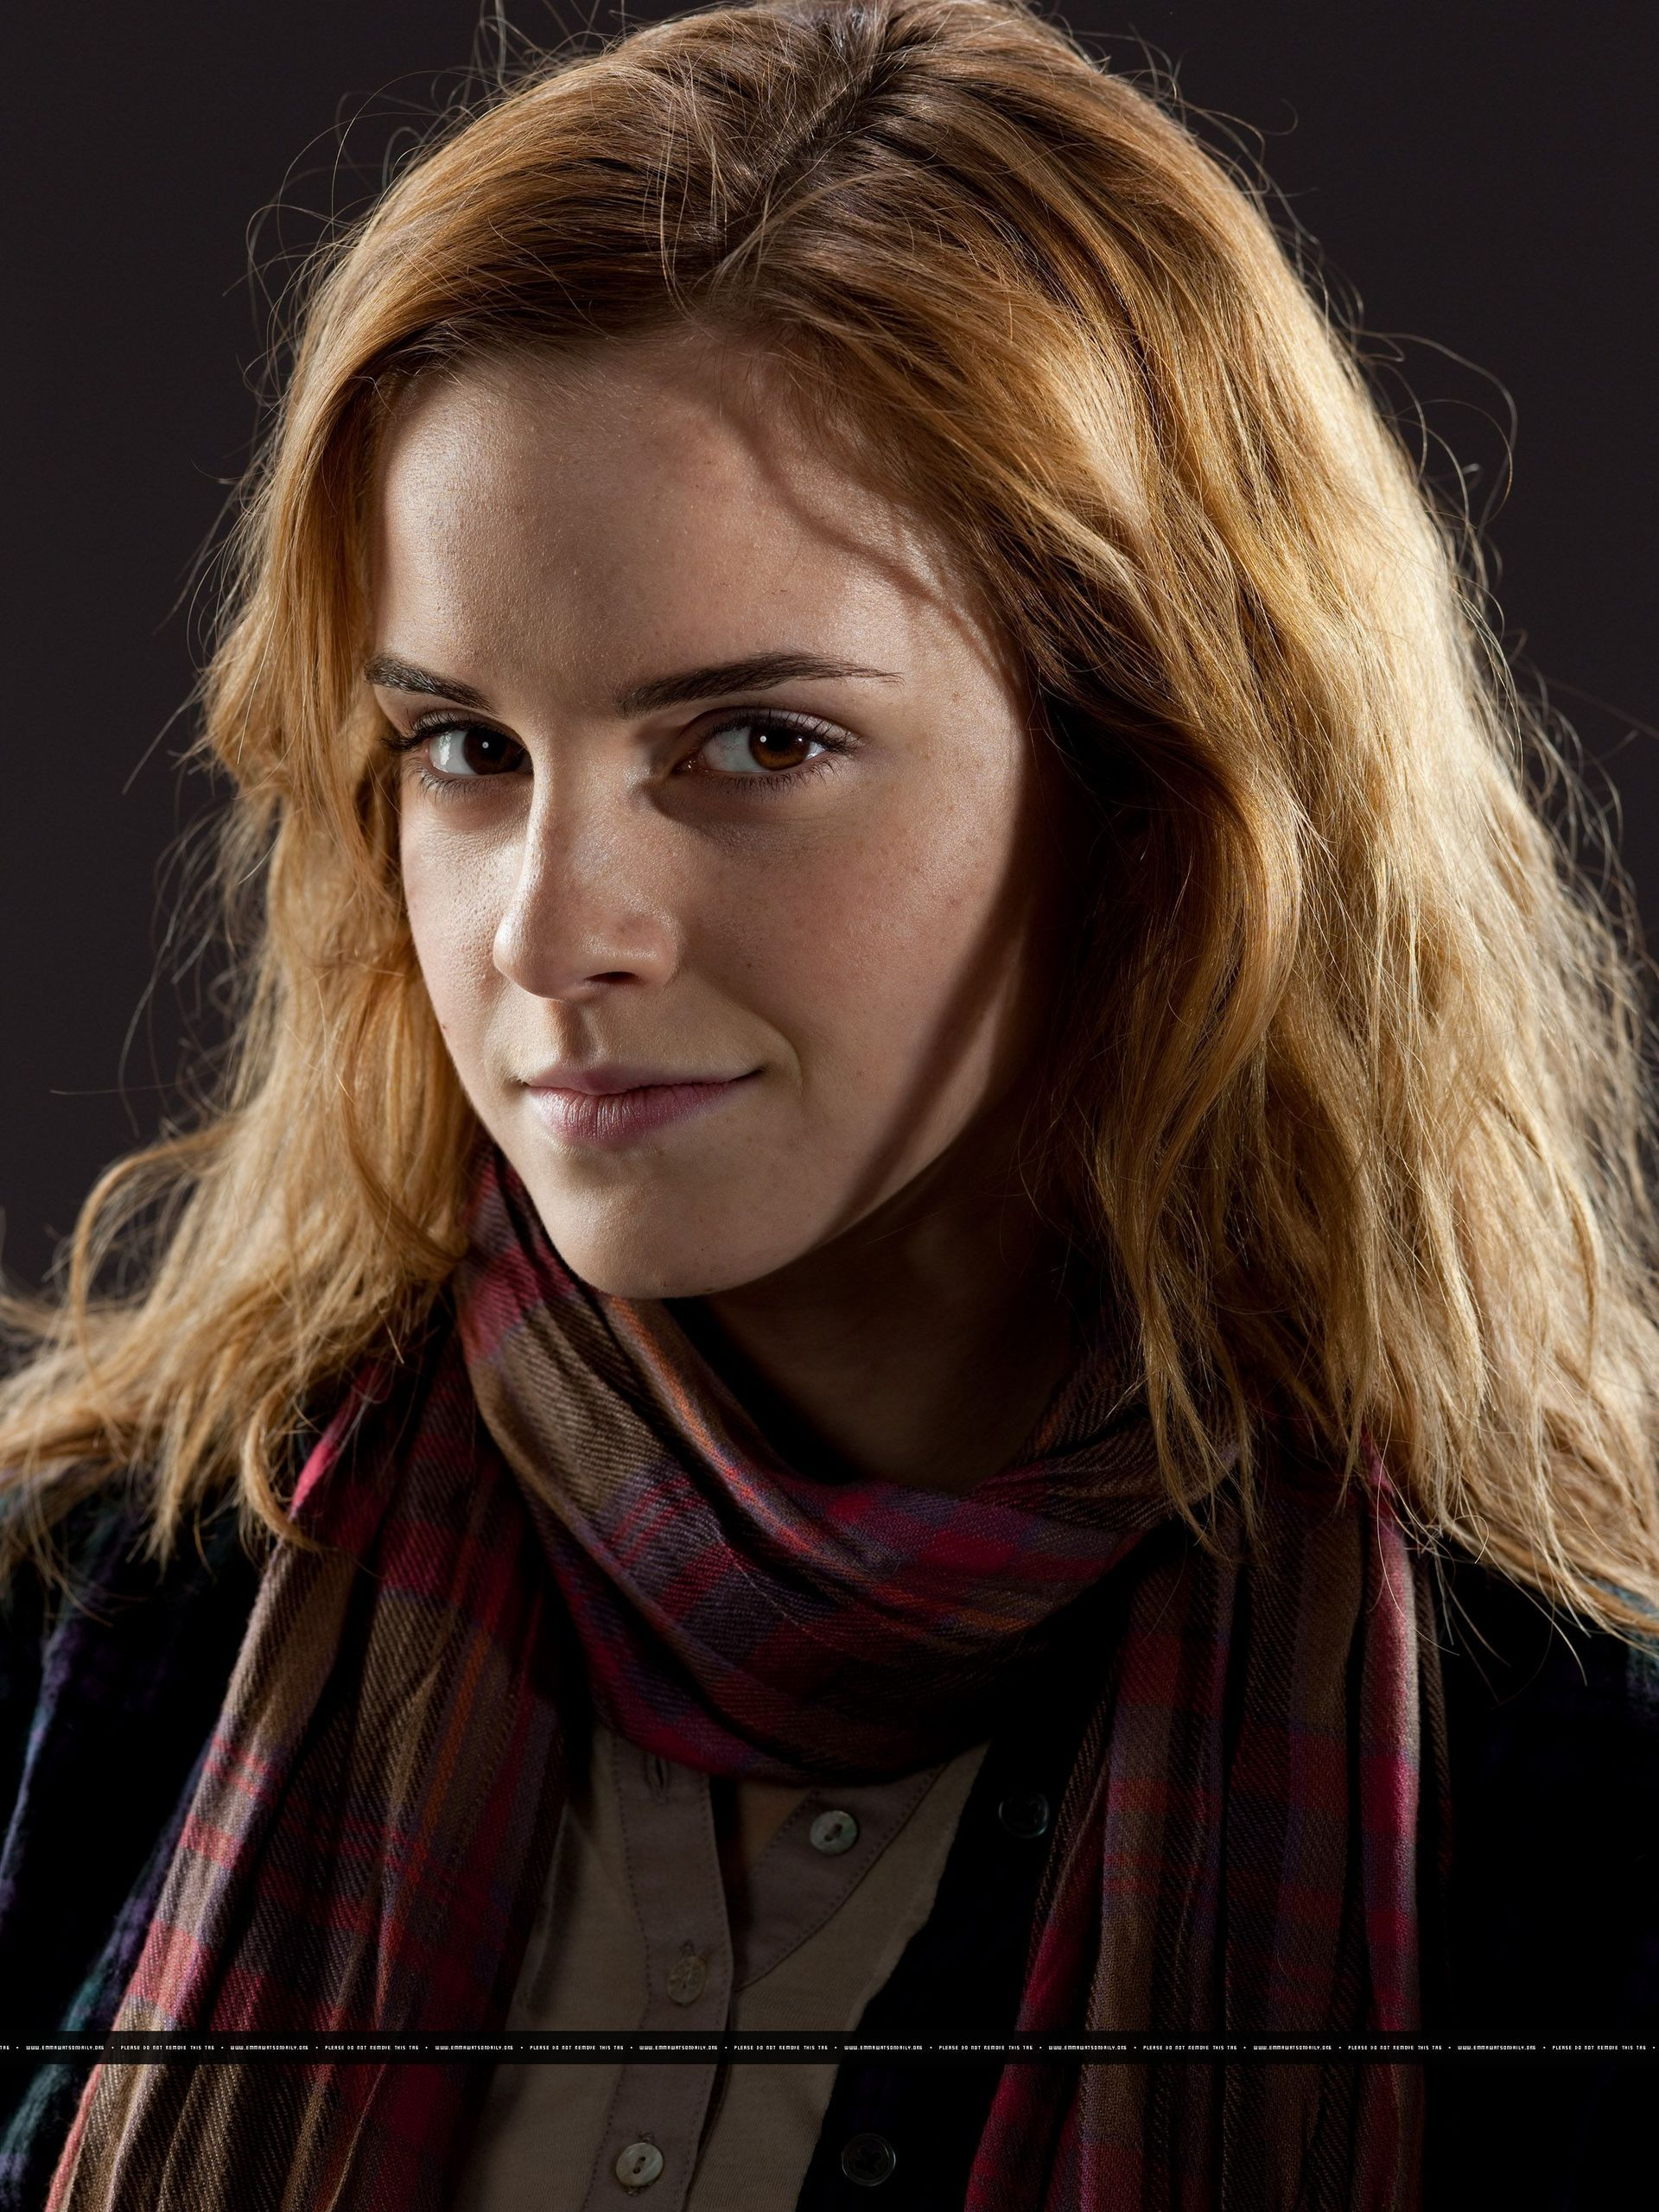 harry potter photo new promotional pictures of emma watson for harry potter and the deathly hallows part 1 emma watson harry potter hermione granger emma watson